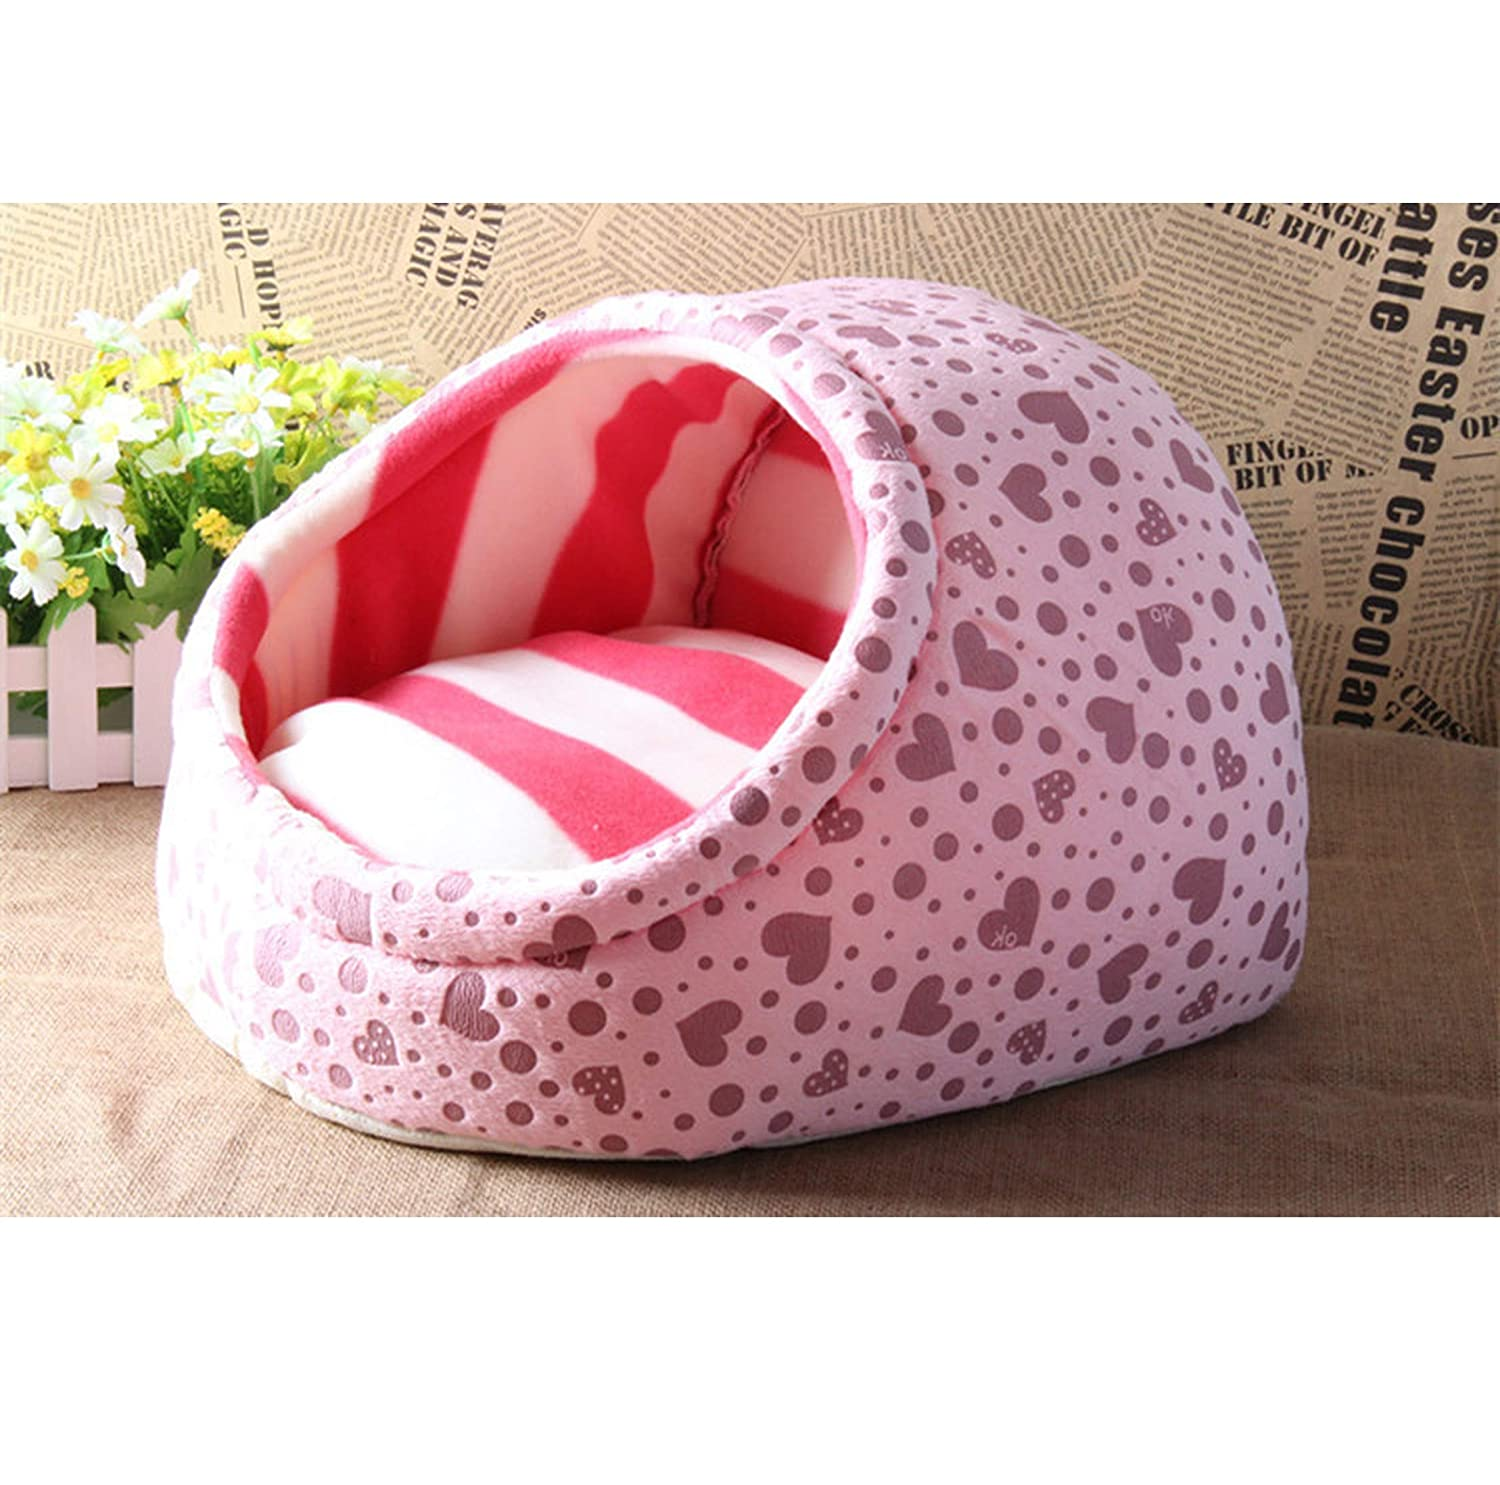 Pink L Pink L Cute Slipper Design Pet Cat Dog Princess Bed Nest Washable Small Dogs Warm House Kennel Dog Bed,Pink,L